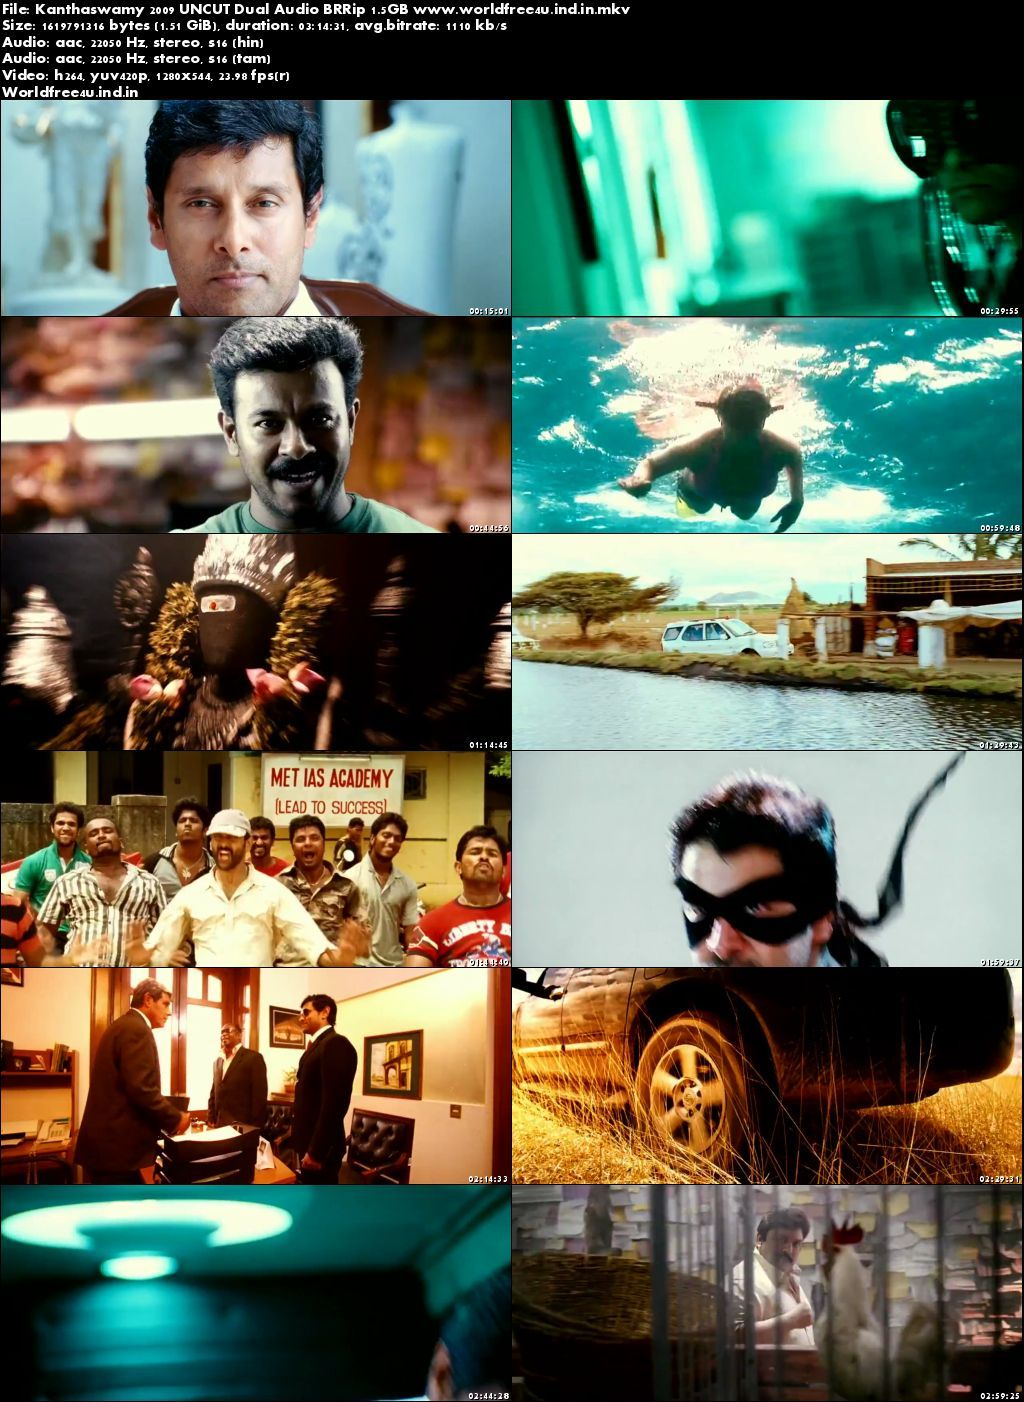 Screen Shot of Kanthaswamy 2009 BRRip 720p Dual Audio 1.5GB - UNCUT Watch Online free at worldfree4u.ind.in